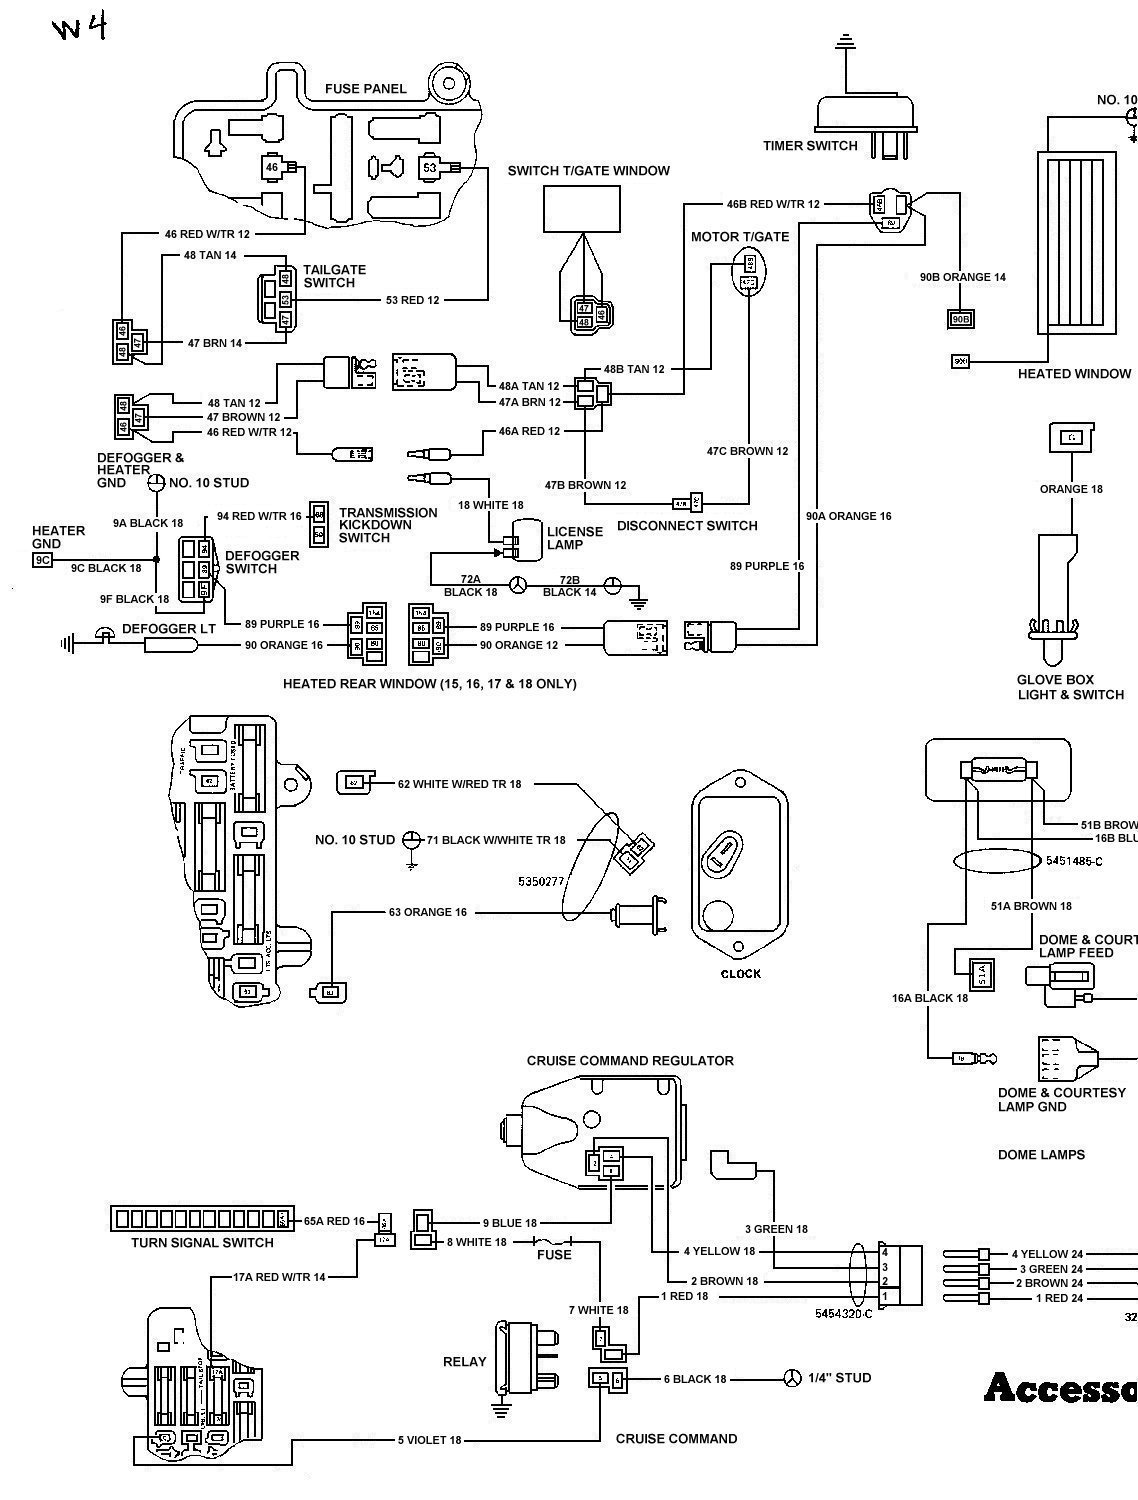 Dodge Ignition Switch Wiring Diagram